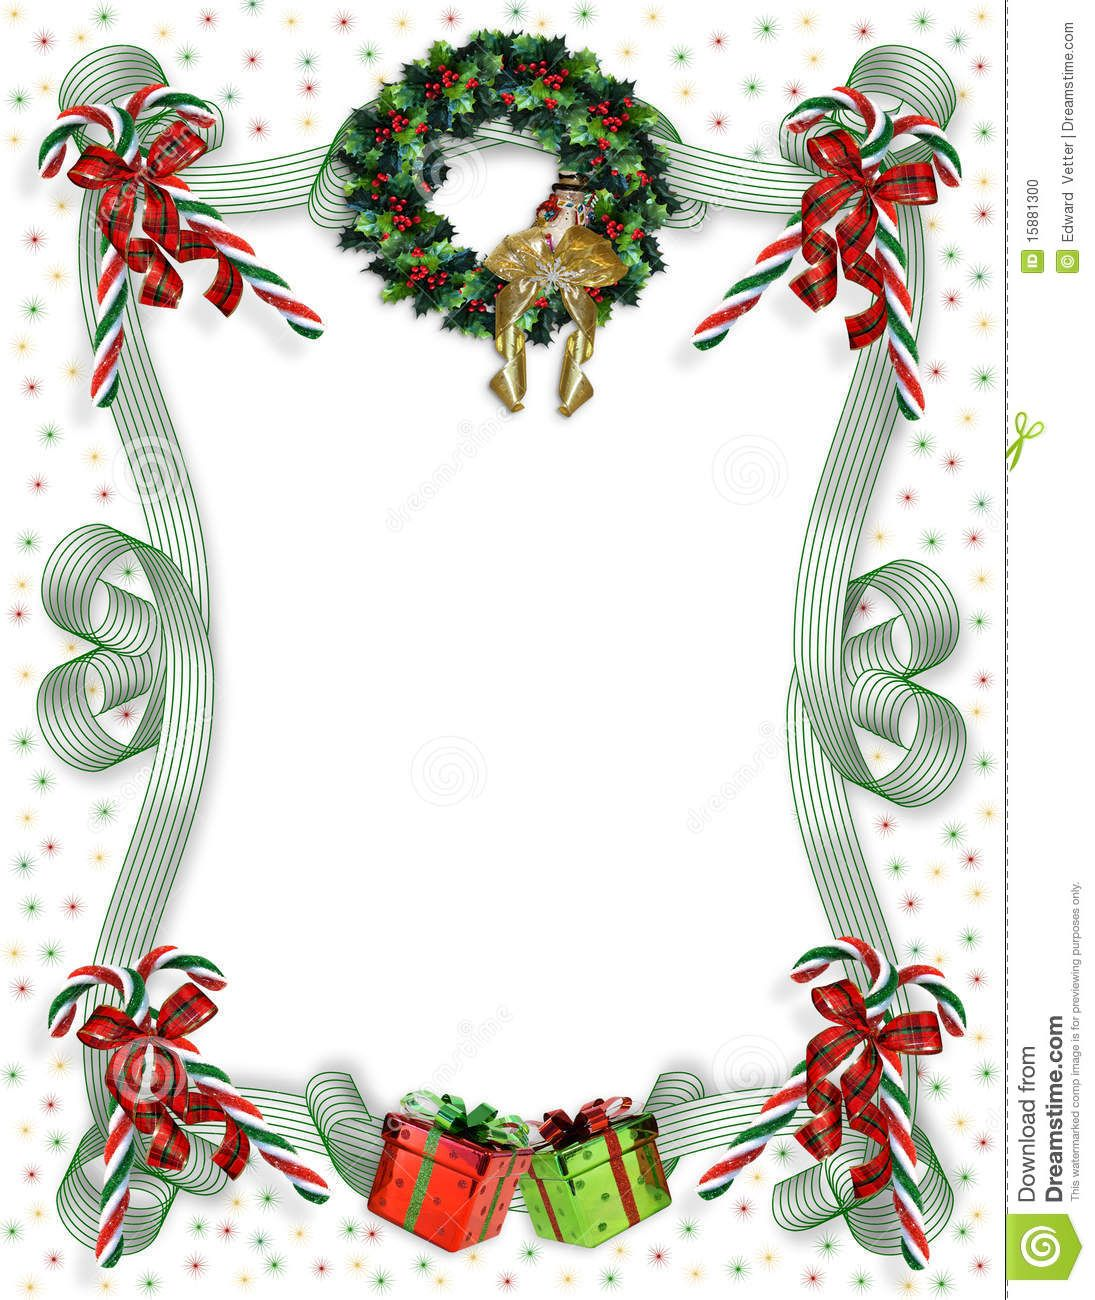 Classy Religious Christmas Crafts For Kids